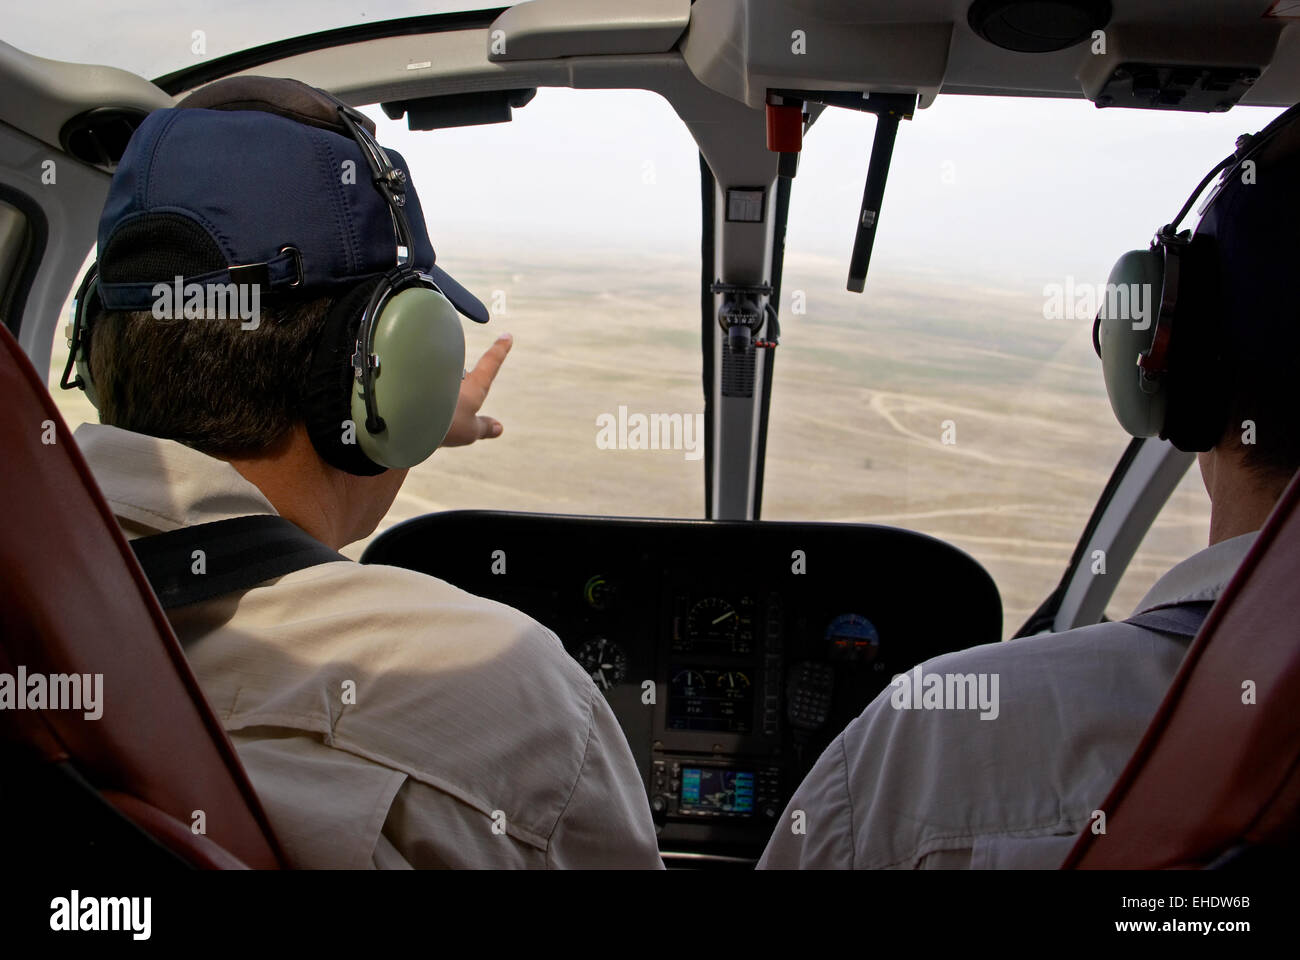 Pilots in helicopter cabin - Stock Image